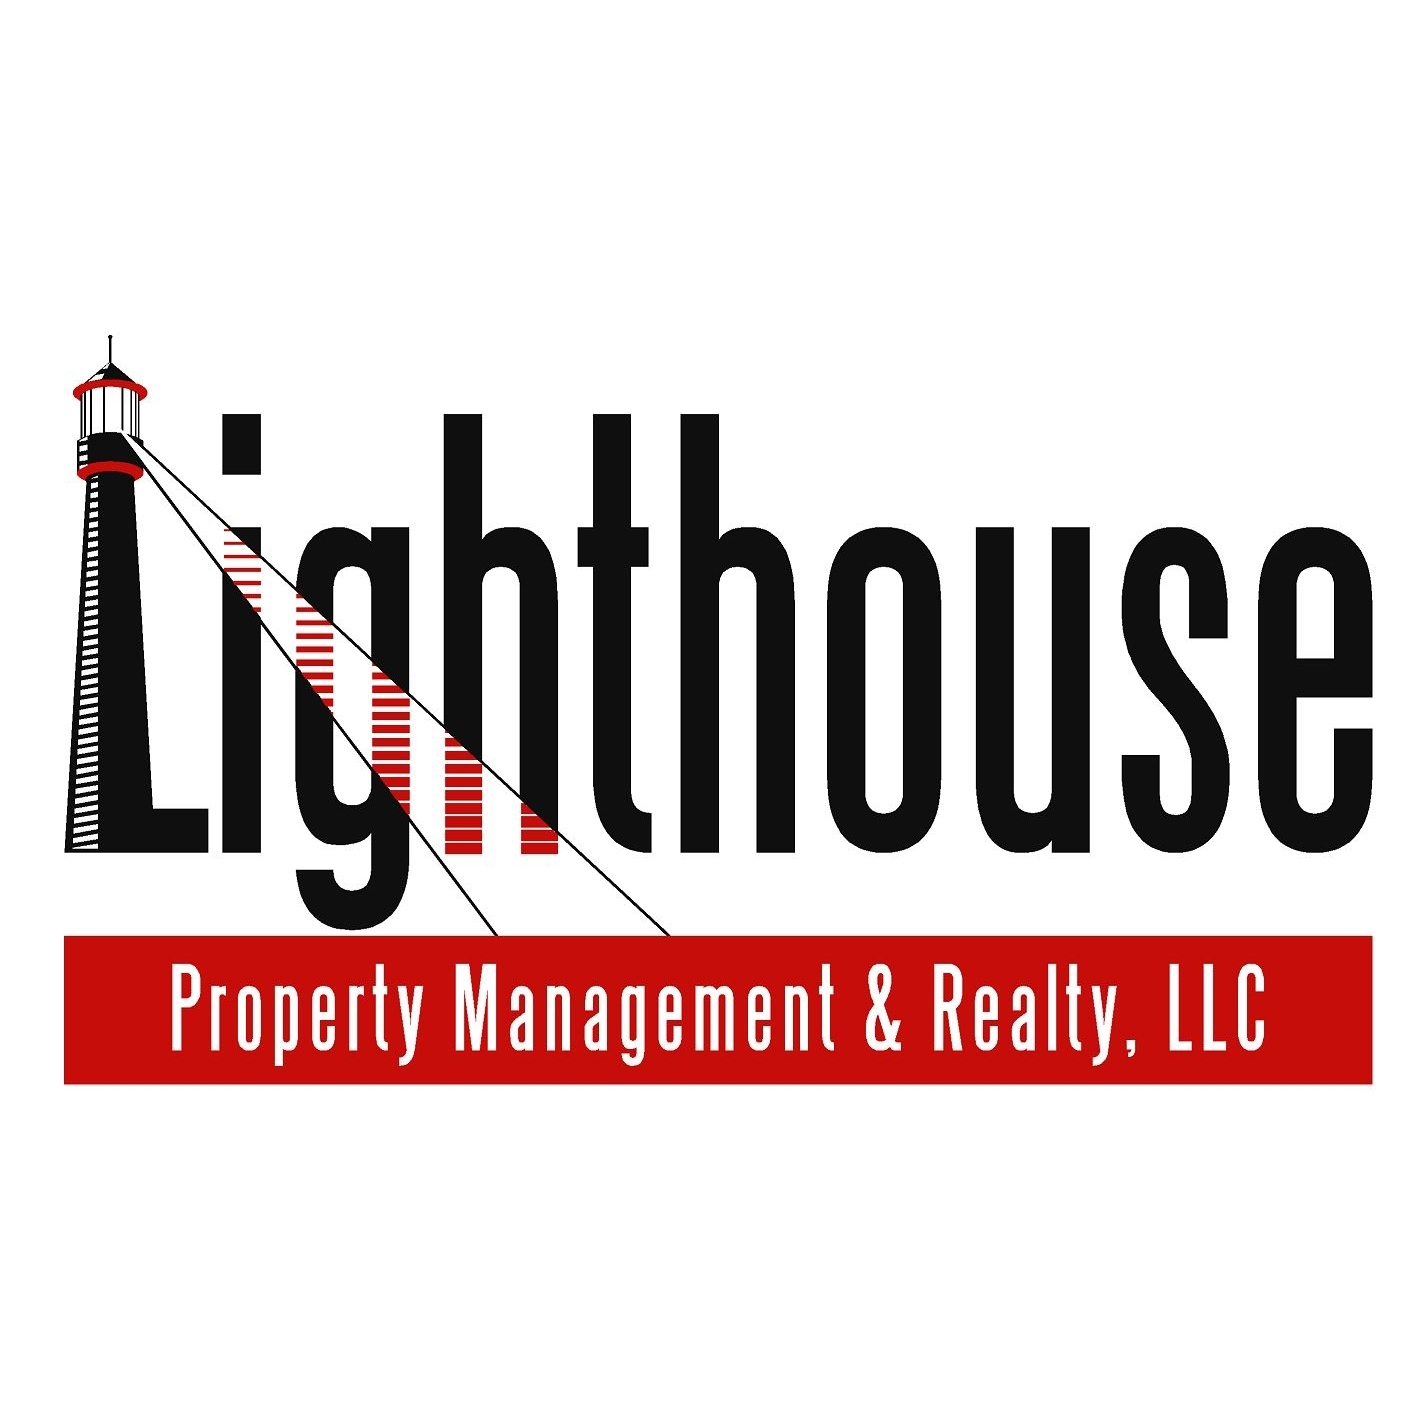 Lighthouse Property Management  Jacksonville, Fl 32217. Online Dental Hygienist Programs. What Is The Best Tesol Certification Program. Avast Business Protection Pbx Visio Stencils. Application Management Tools. New Ios Software For Iphone Ymc Hplc Column. Occupational Health And Safety Internships. Fraser Suites Insadong Seoul. Types Of Auto Insurance Coverage